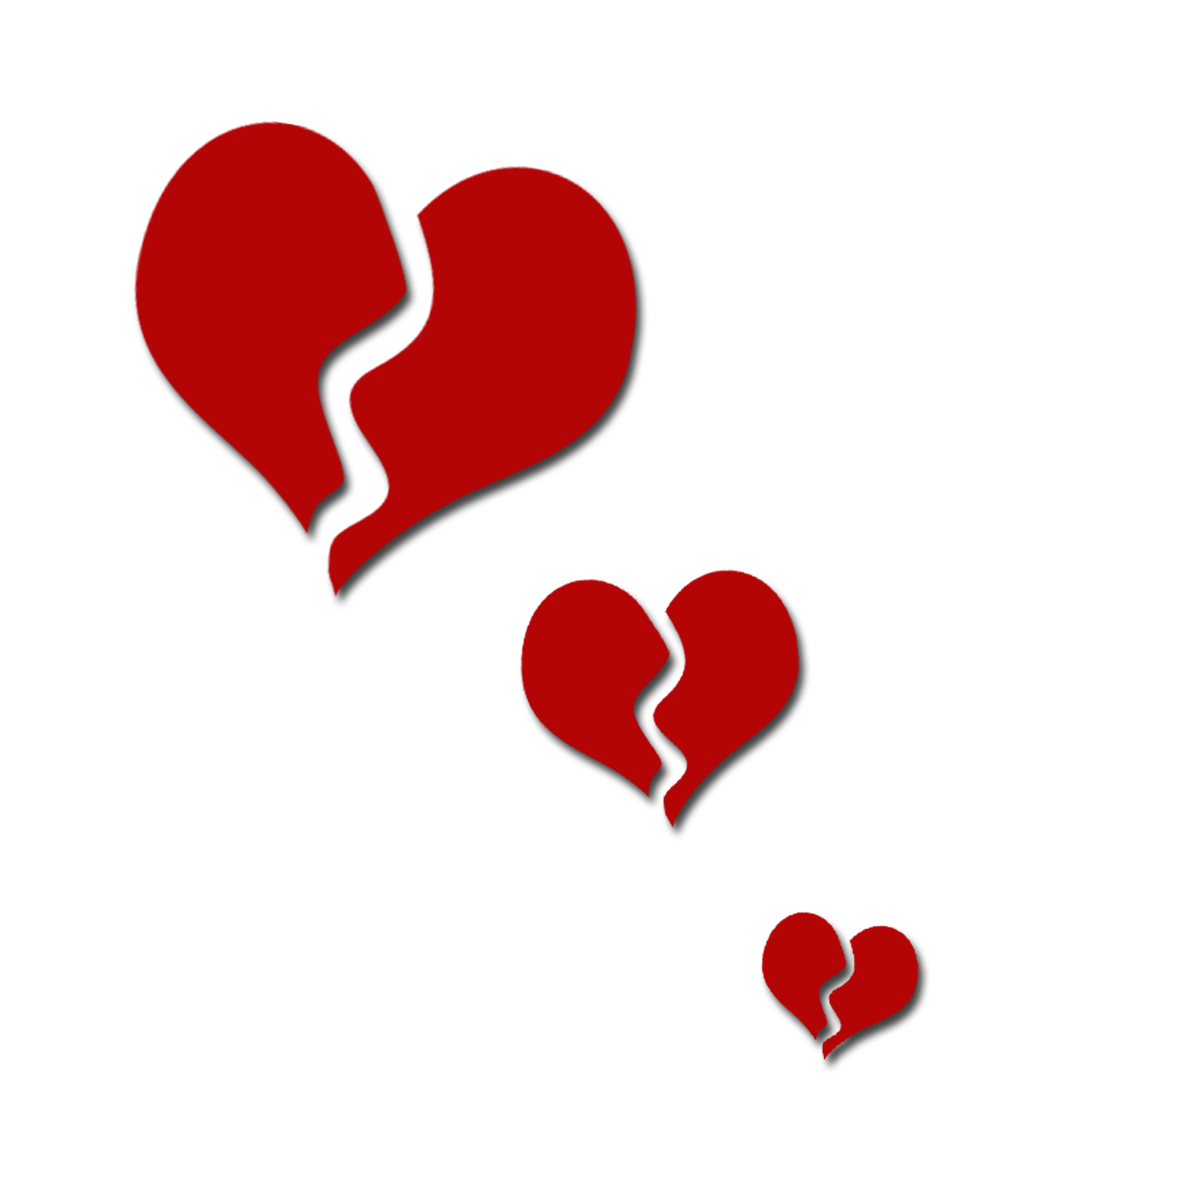 Broken heart clipart.